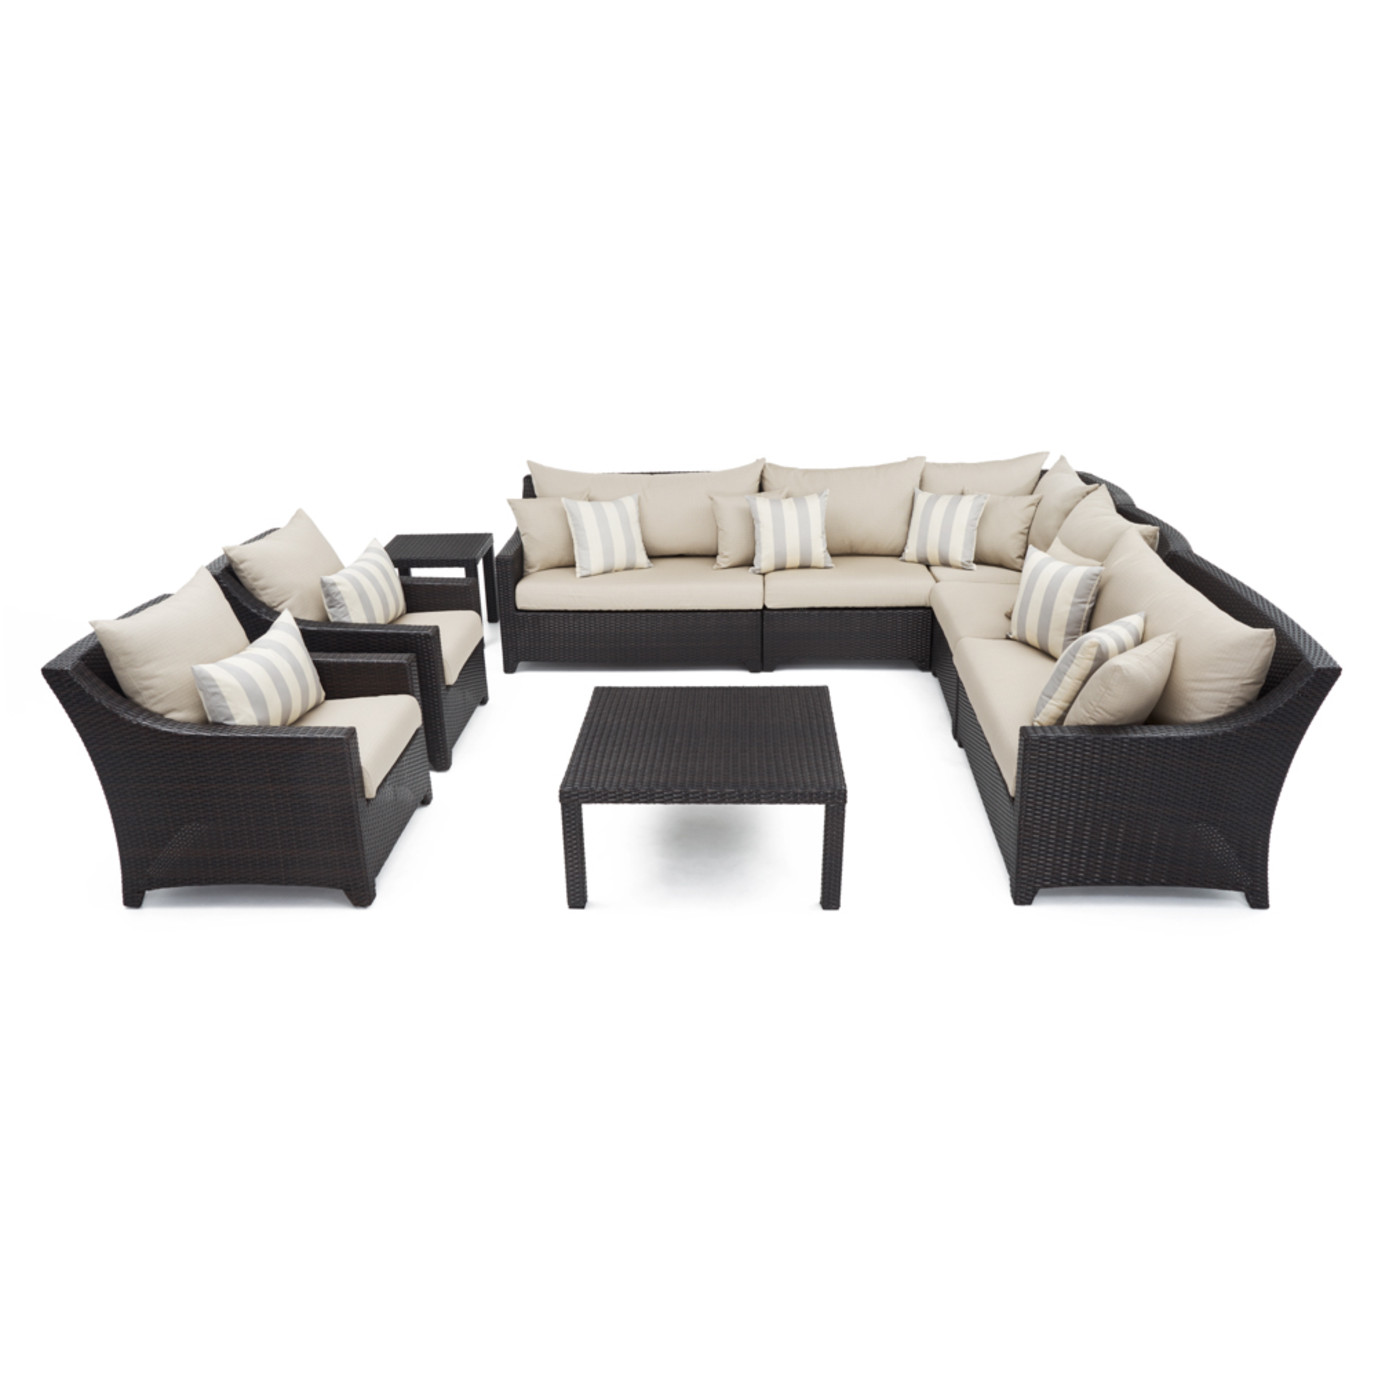 Deco™ 9pc Sectional and Club Set - Slate Gray